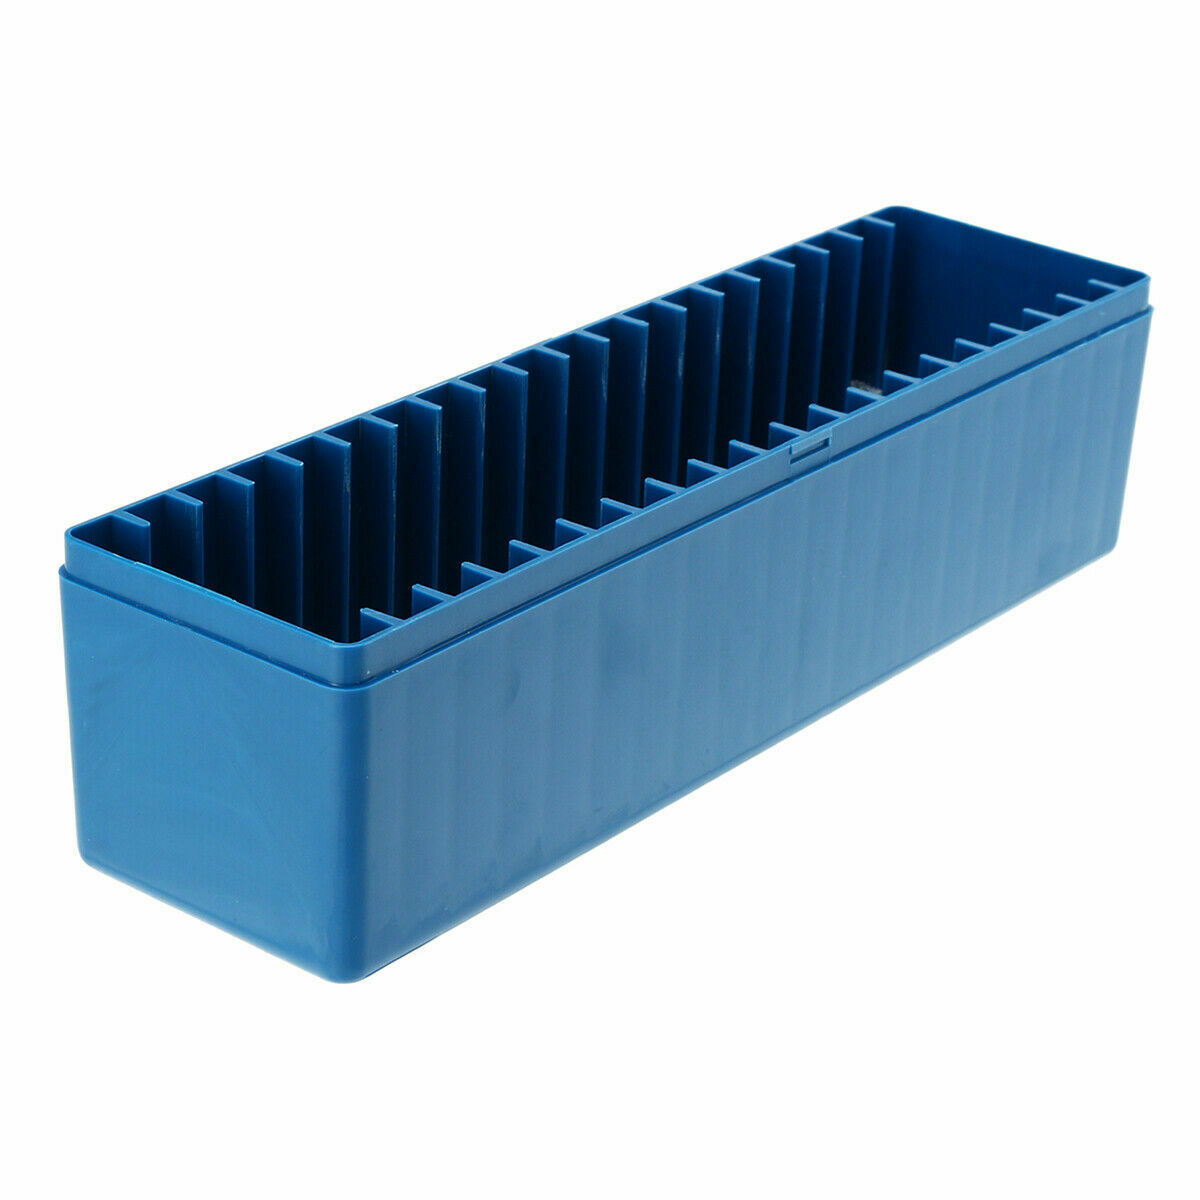 25x9x7cm Blue Storage Tool Box Case Holds 20 Individual Certified PCGS NGC ICG image 6